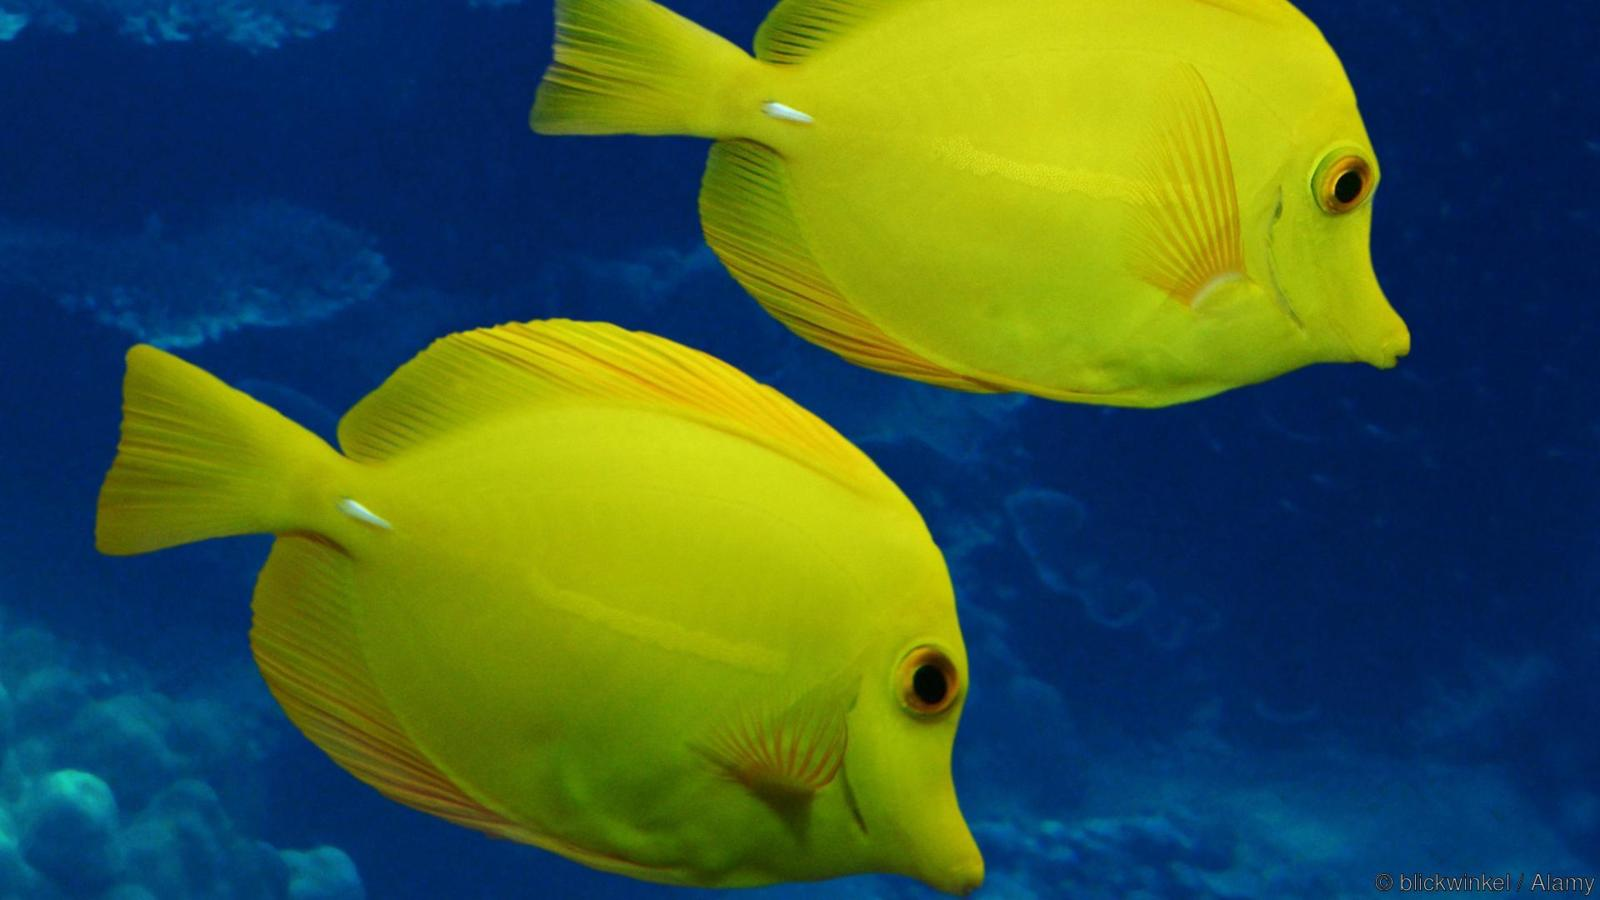 yellow tang (Zebrasoma flavescens), distribution: Pacific Ocean